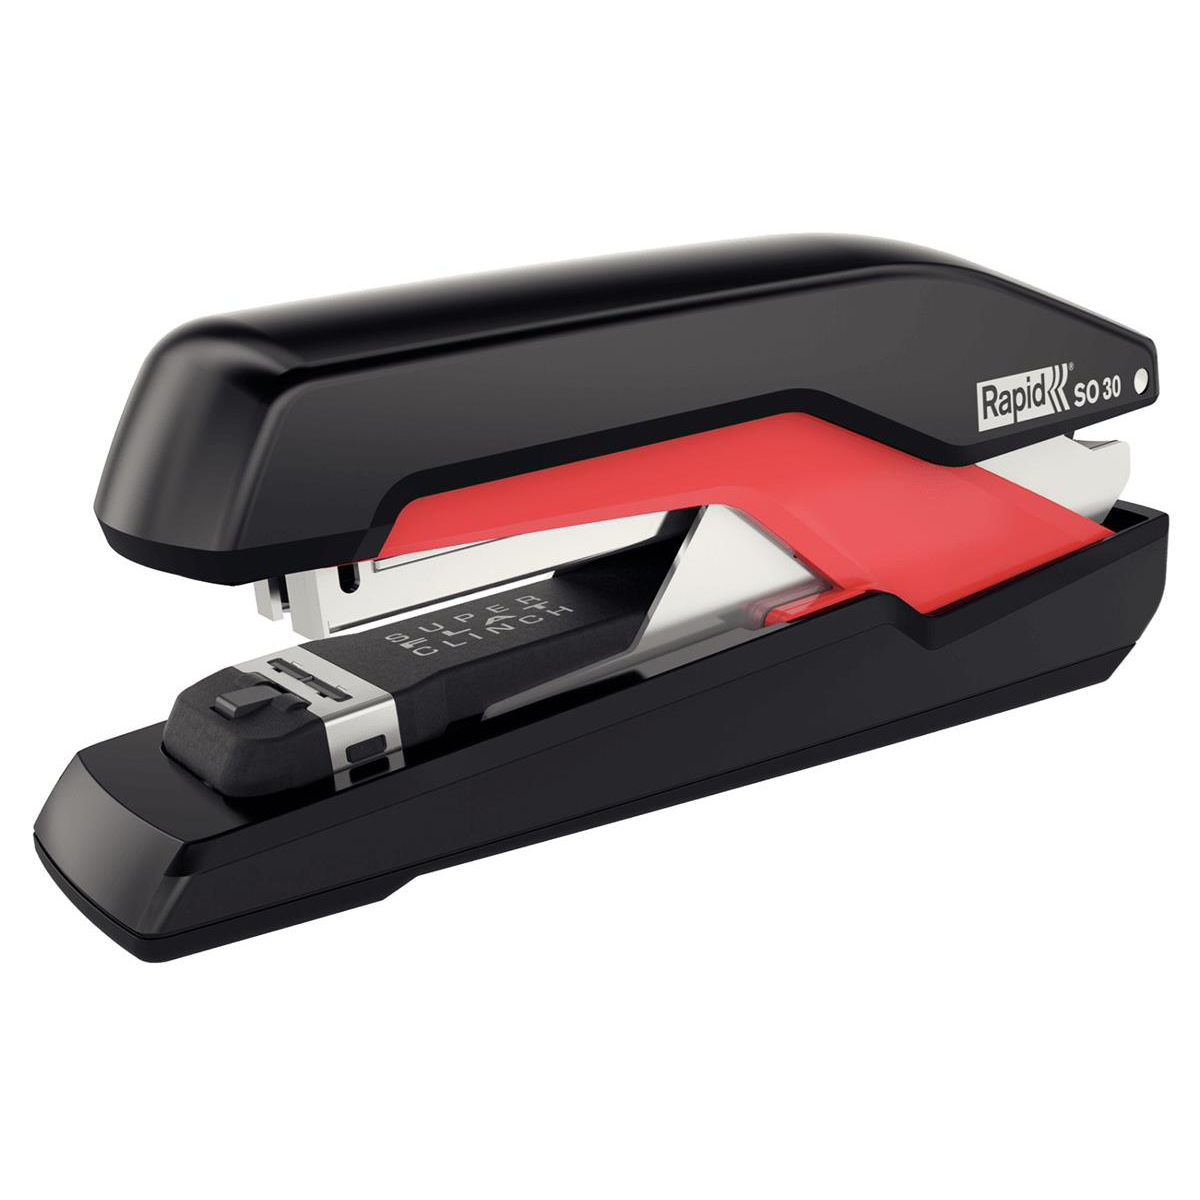 Rapid Supreme Omnipress Stapler SO30